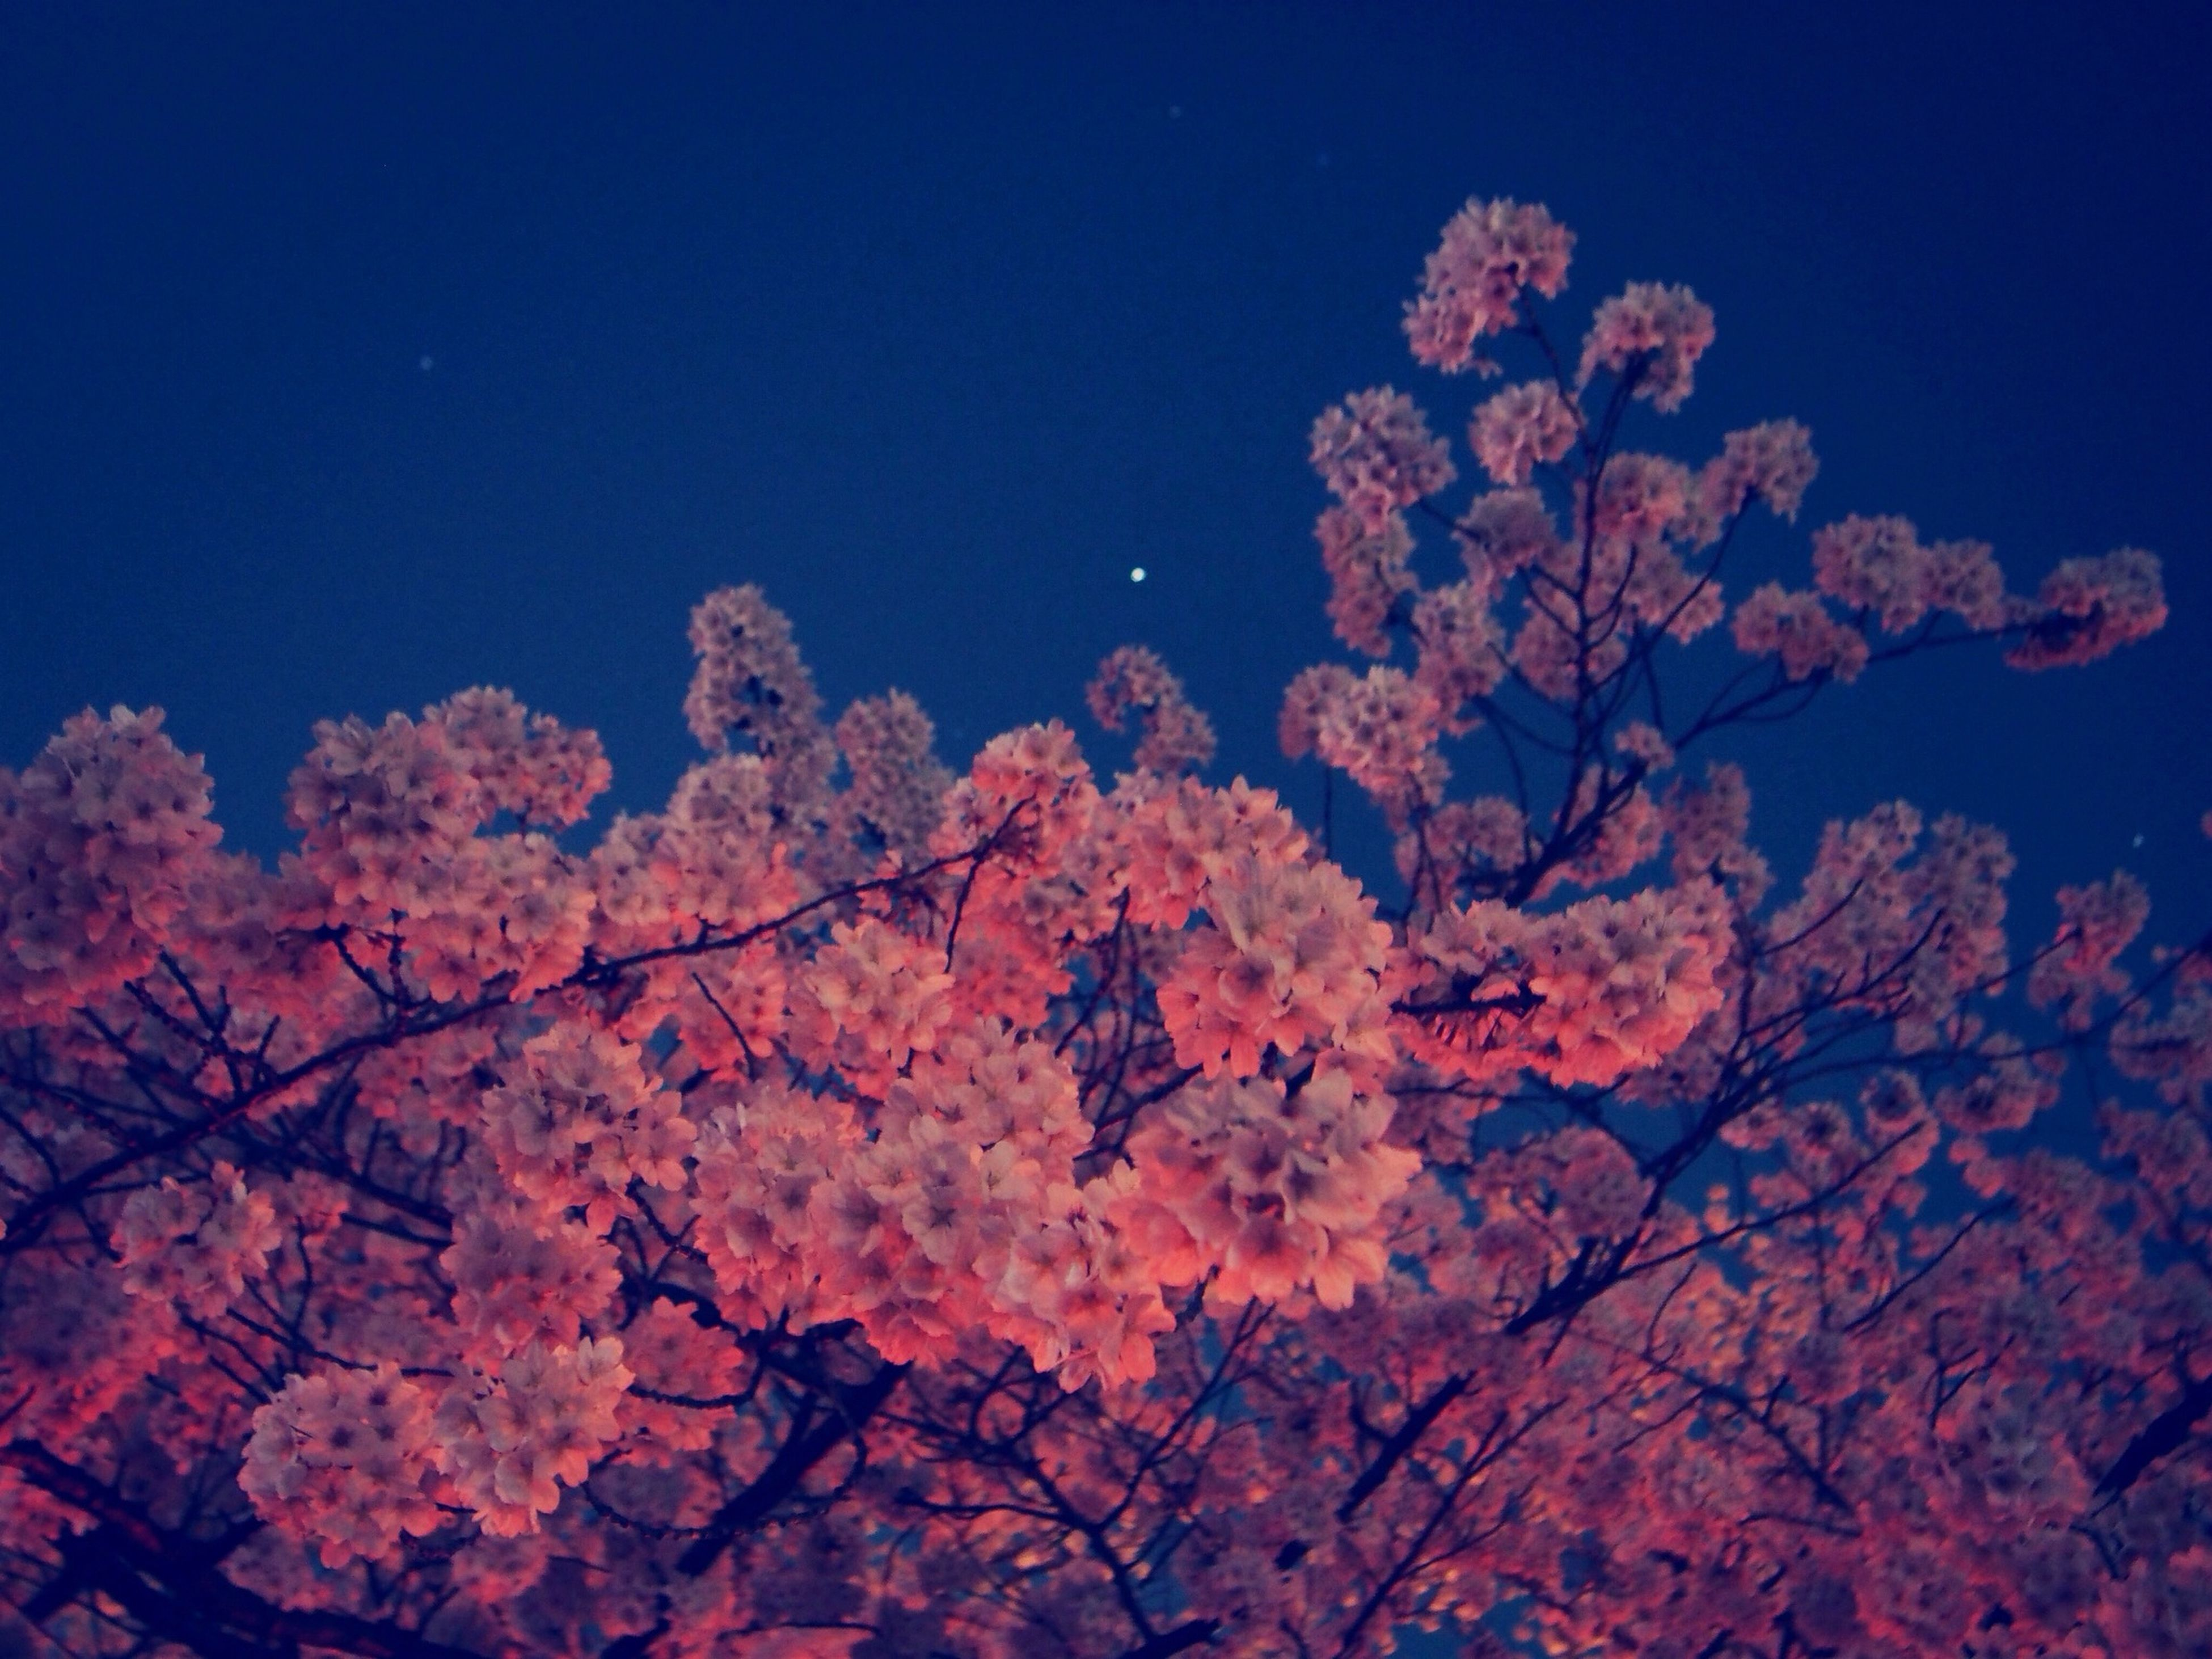 tree, low angle view, branch, clear sky, growth, flower, beauty in nature, blue, nature, freshness, sky, blossom, copy space, tranquility, pink color, high section, scenics, outdoors, fragility, no people